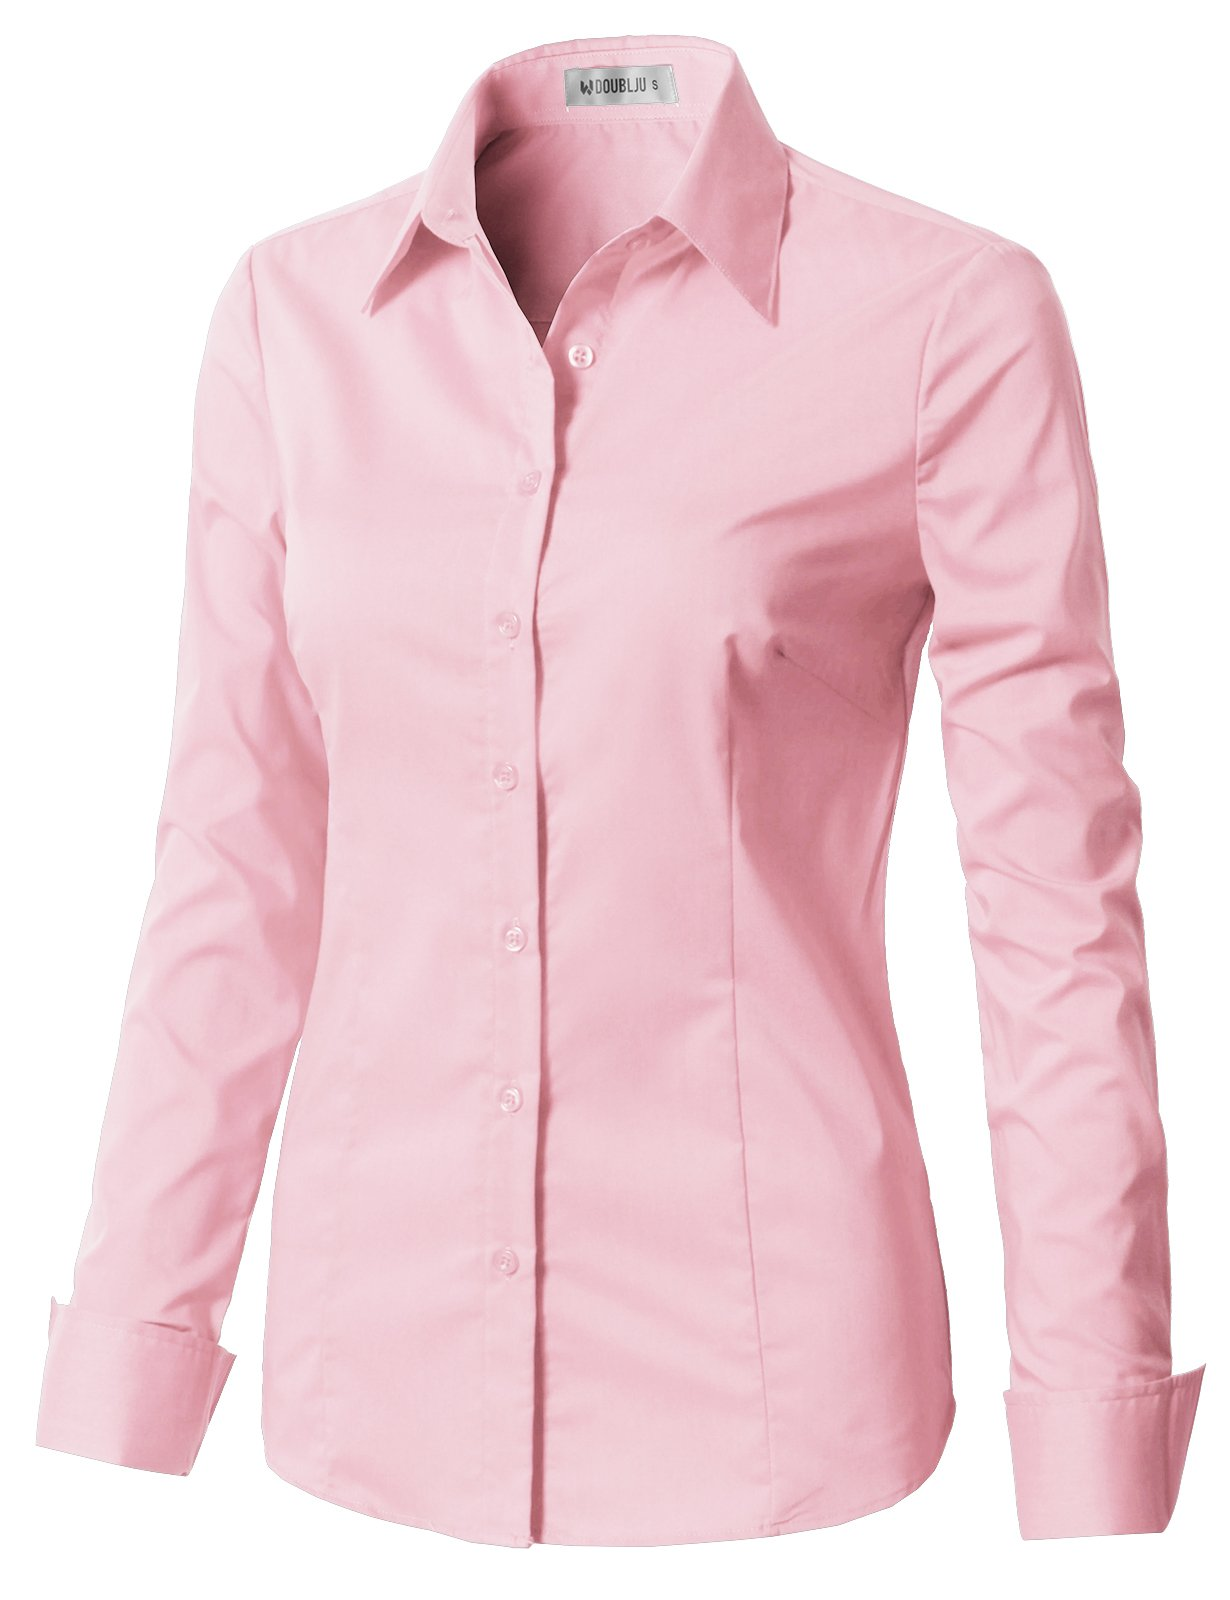 CLOVERY Women's Cotton Basic Button Down Shirt Long Sleeve Pleated Blouse with Plus Size Babypink XL